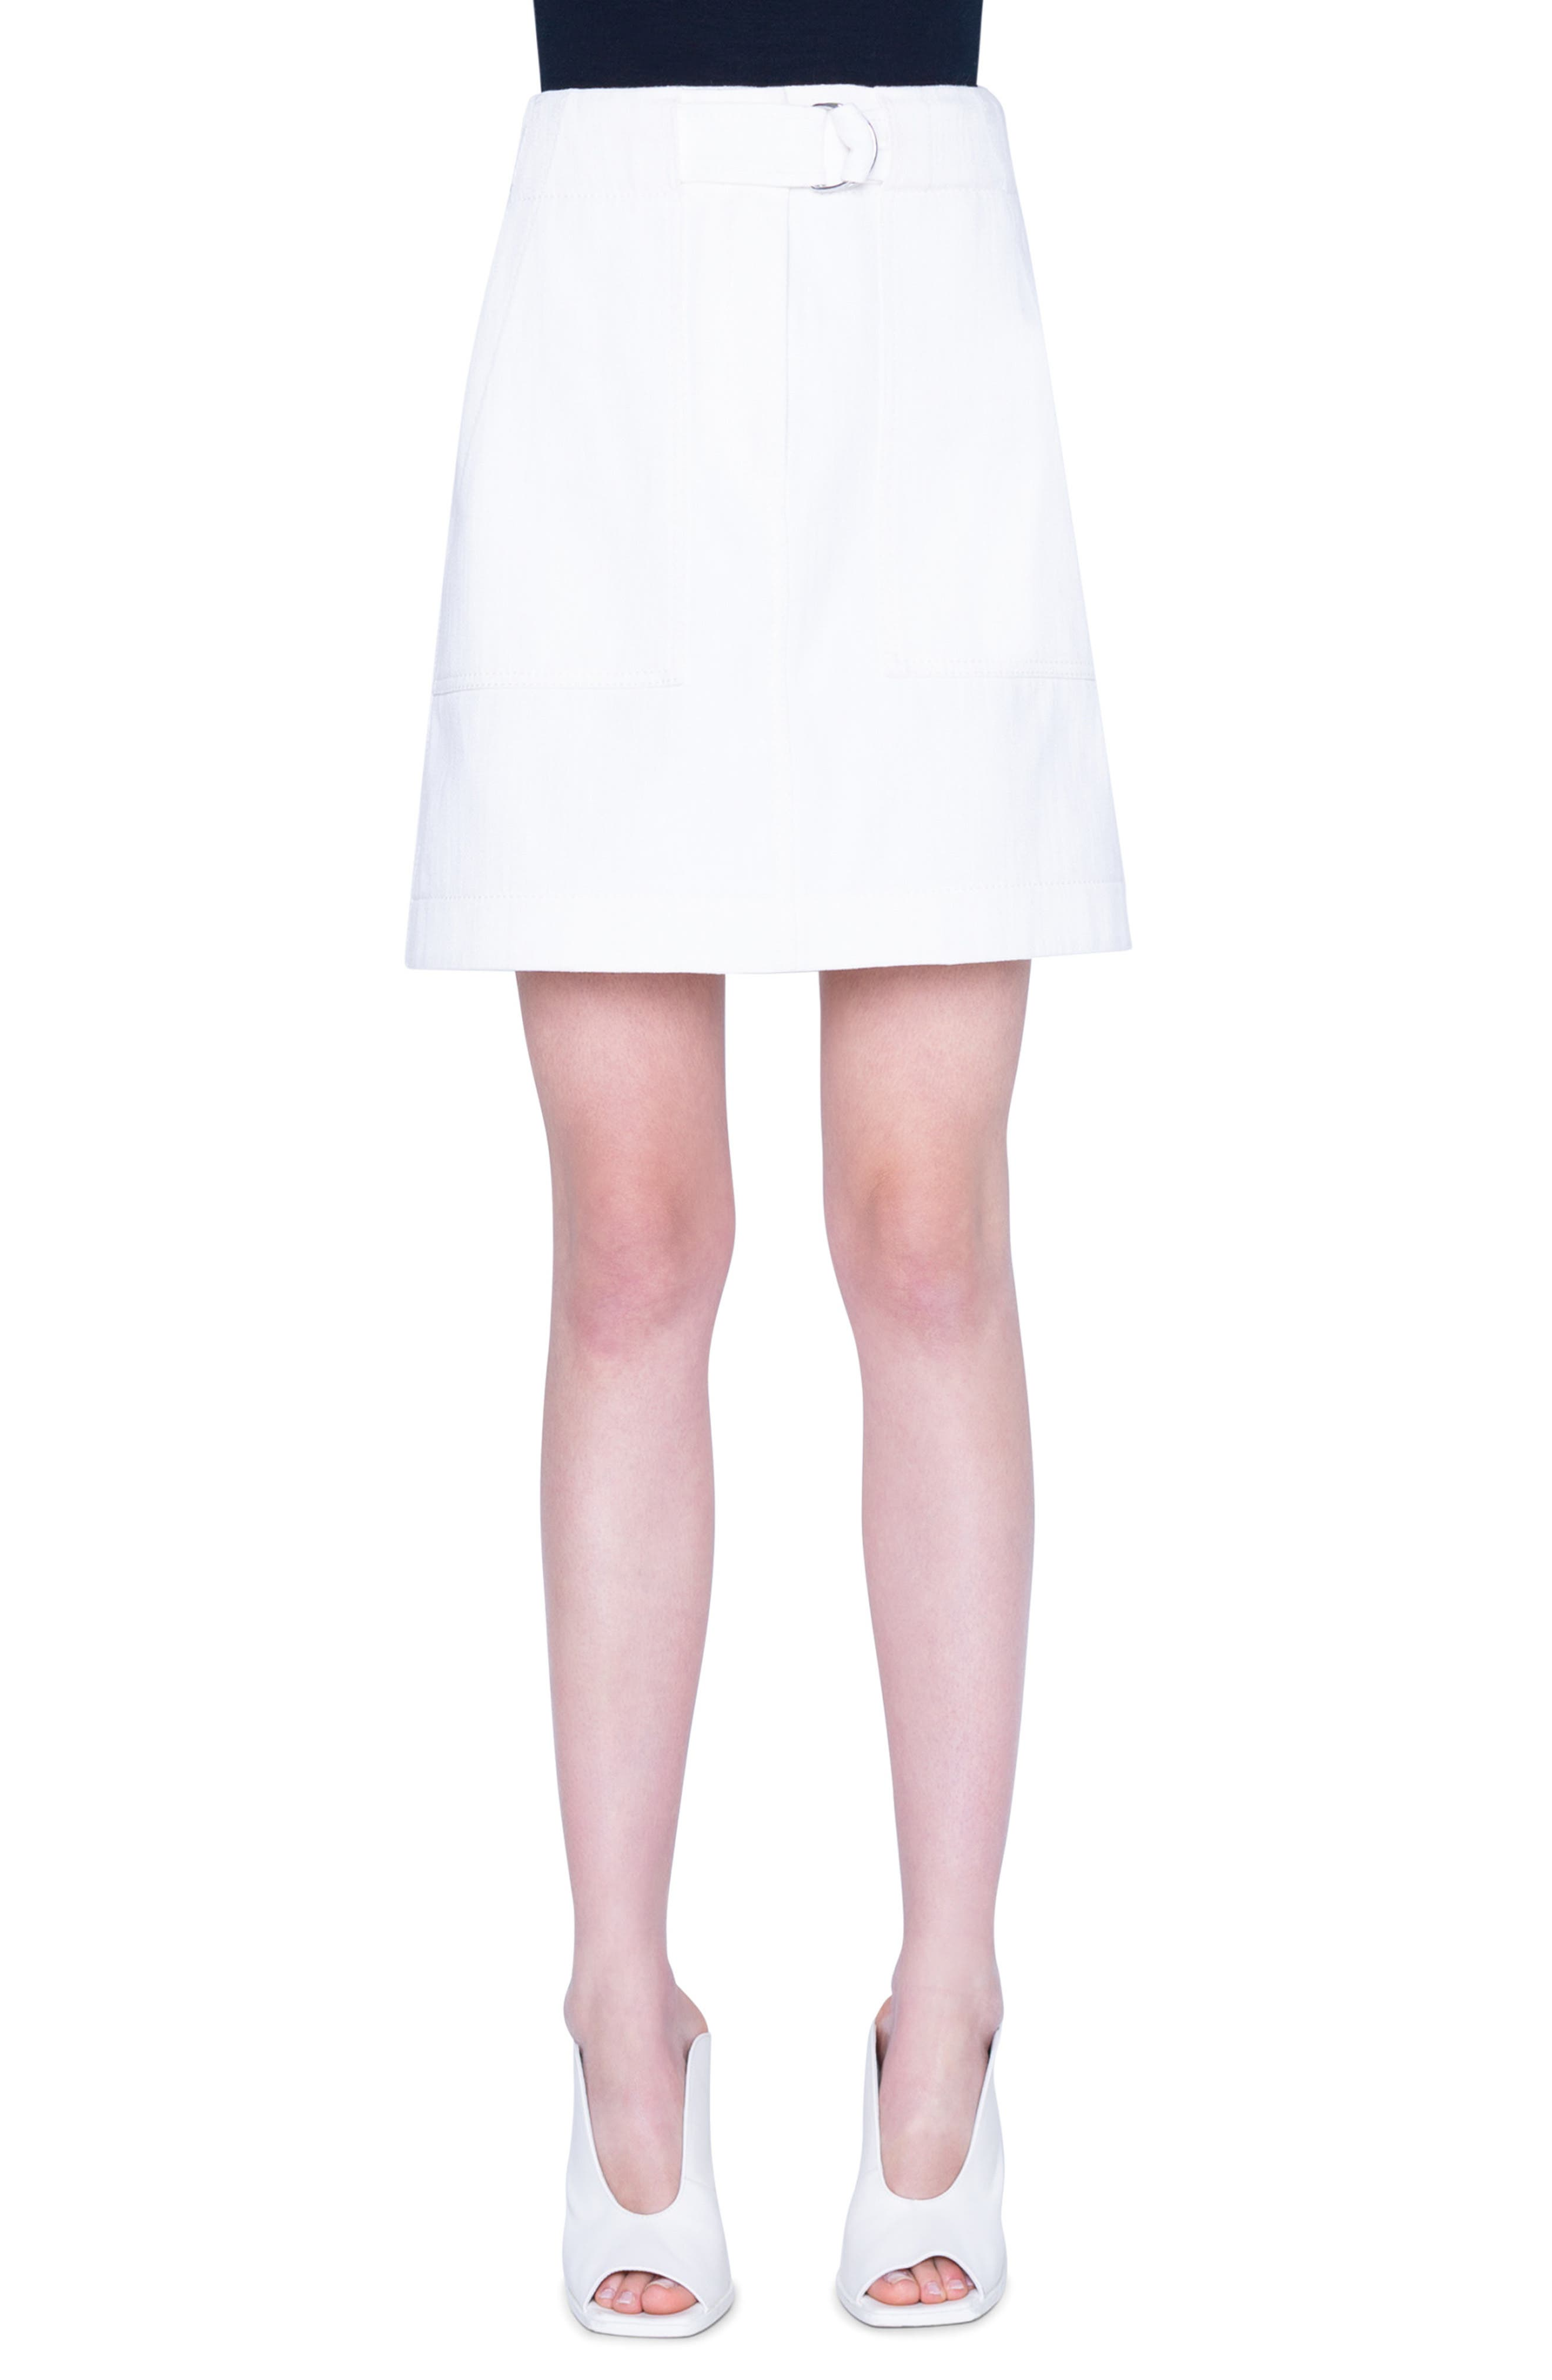 Cargo pockets and an attached D-ring belt lend utilitarian appeal to this A-line miniskirt made from cotton stretch gabardine. Style Name: Akris Punto Stretch Cotton Cargo Skirt. Style Number: 5917854. Available in stores.